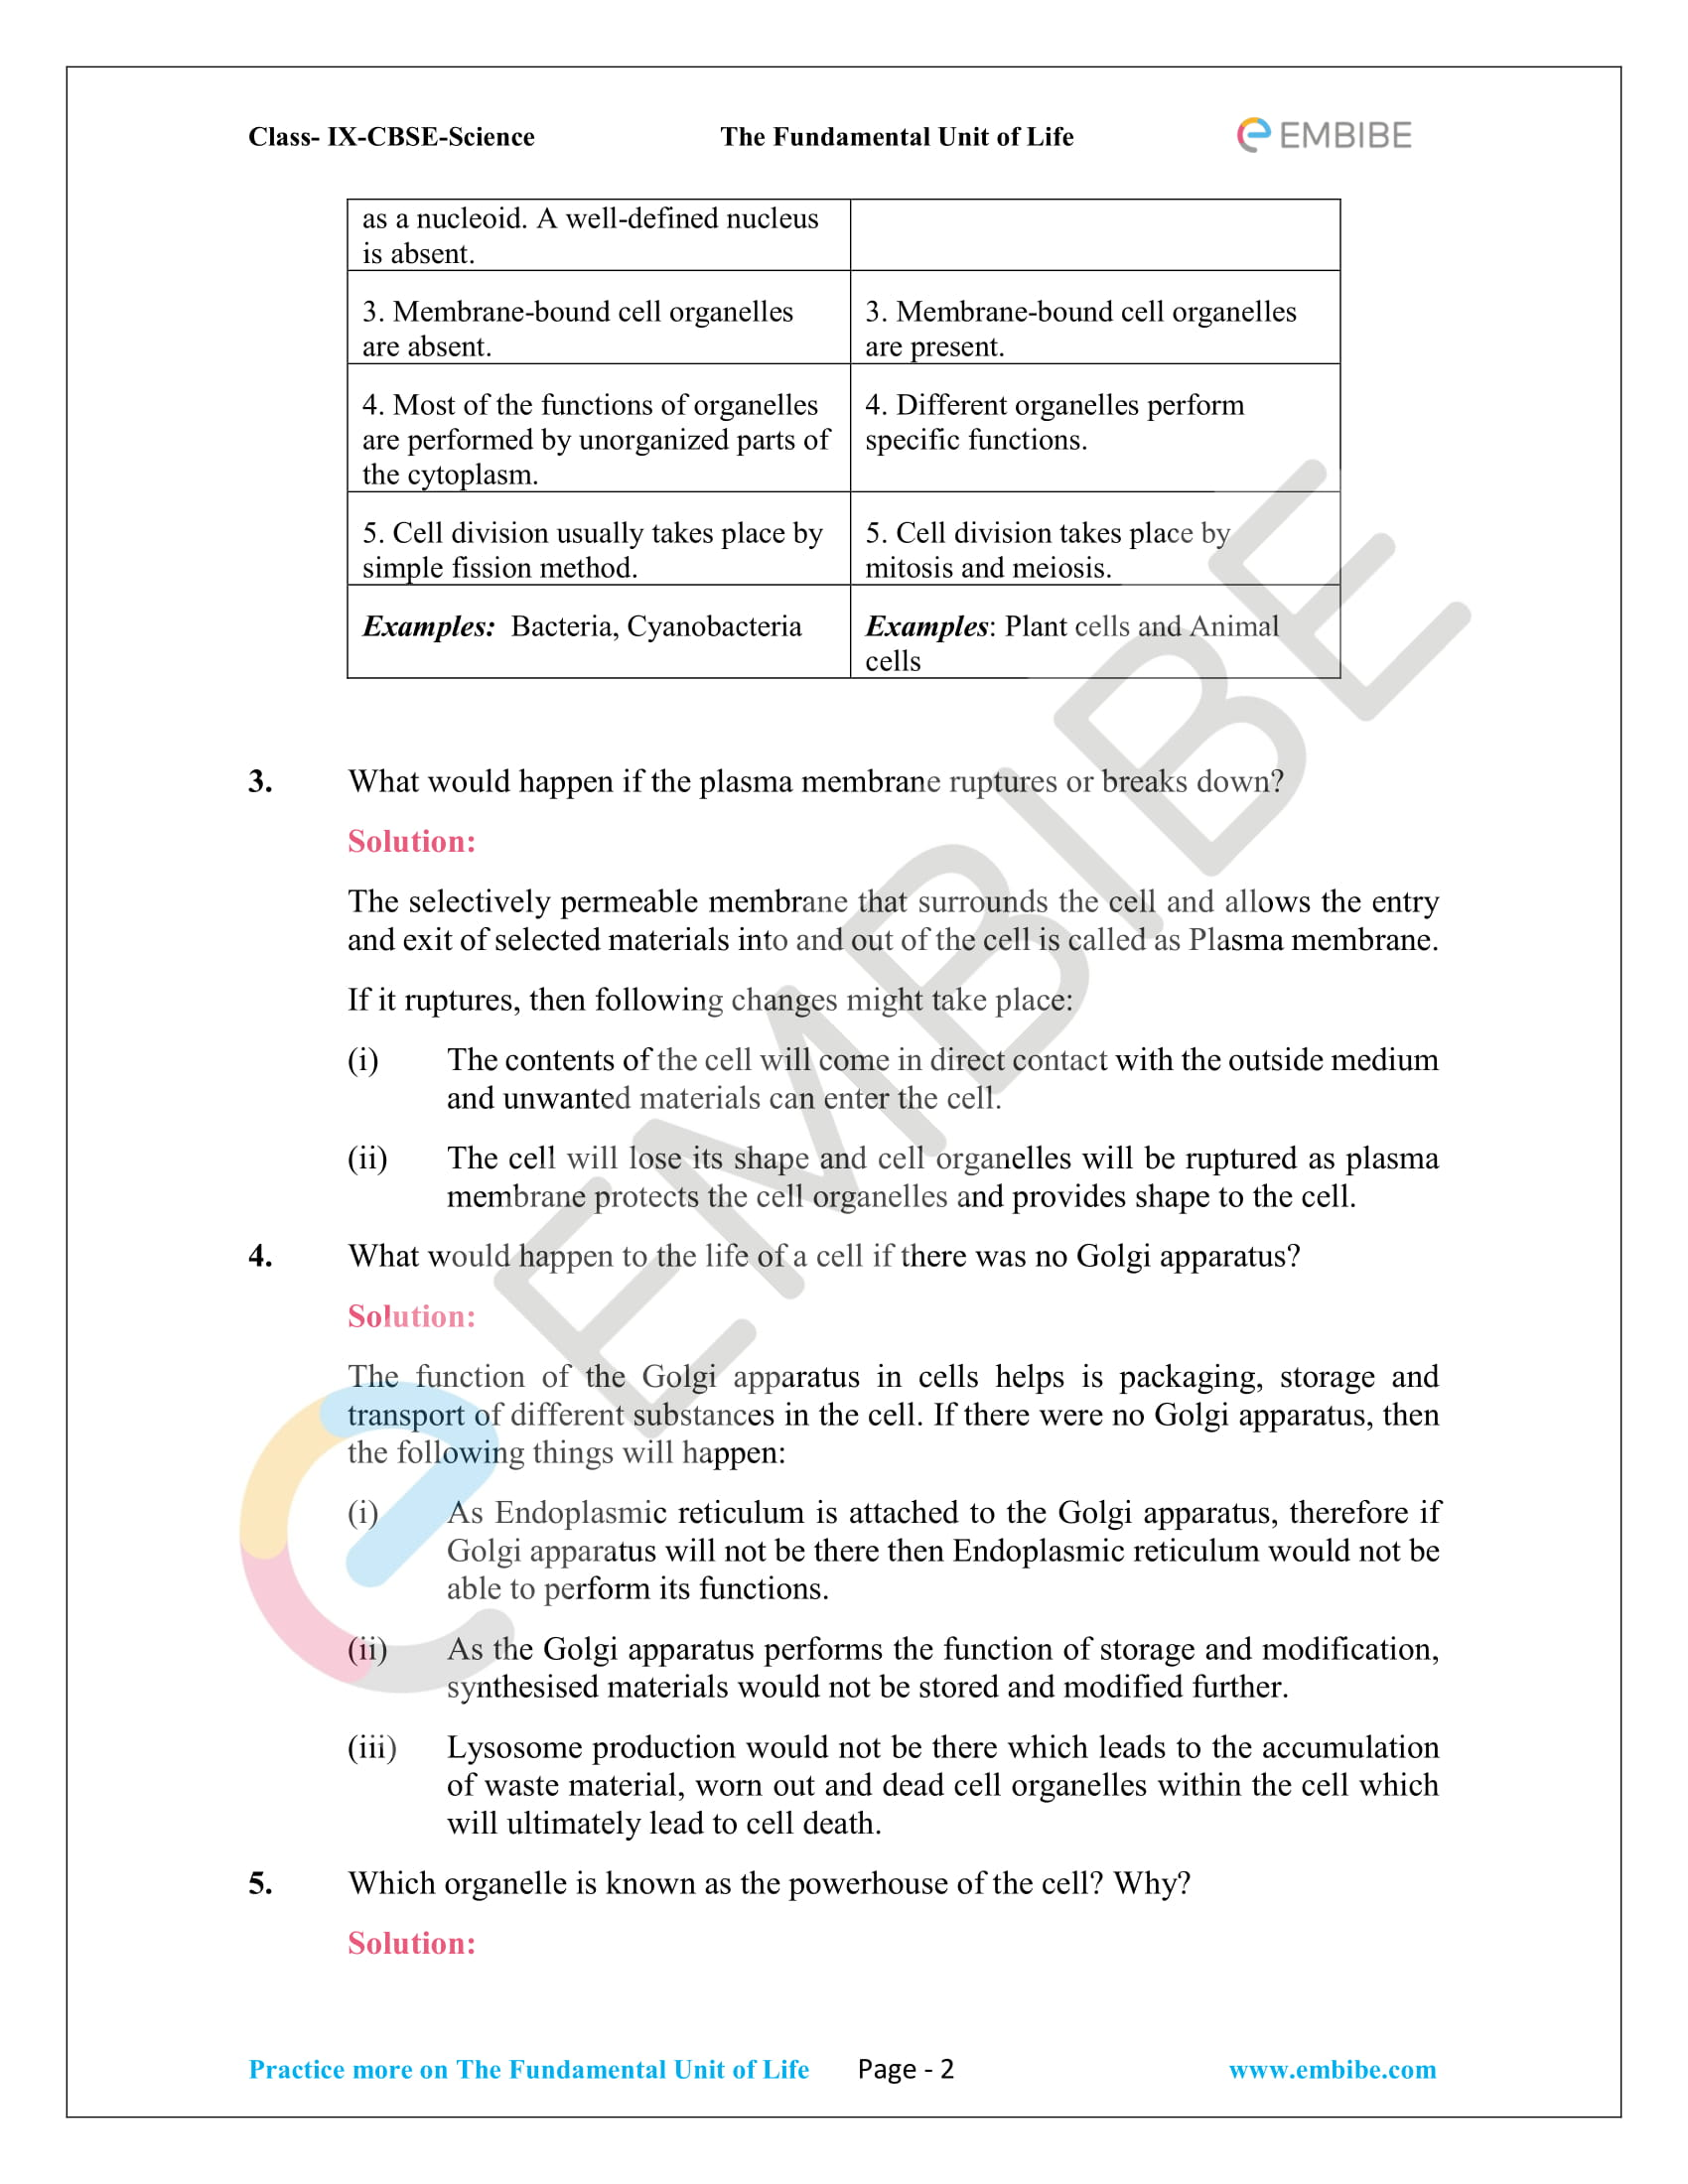 CBSE NCERT Solutions For Class 9 Science Chapter 5: The